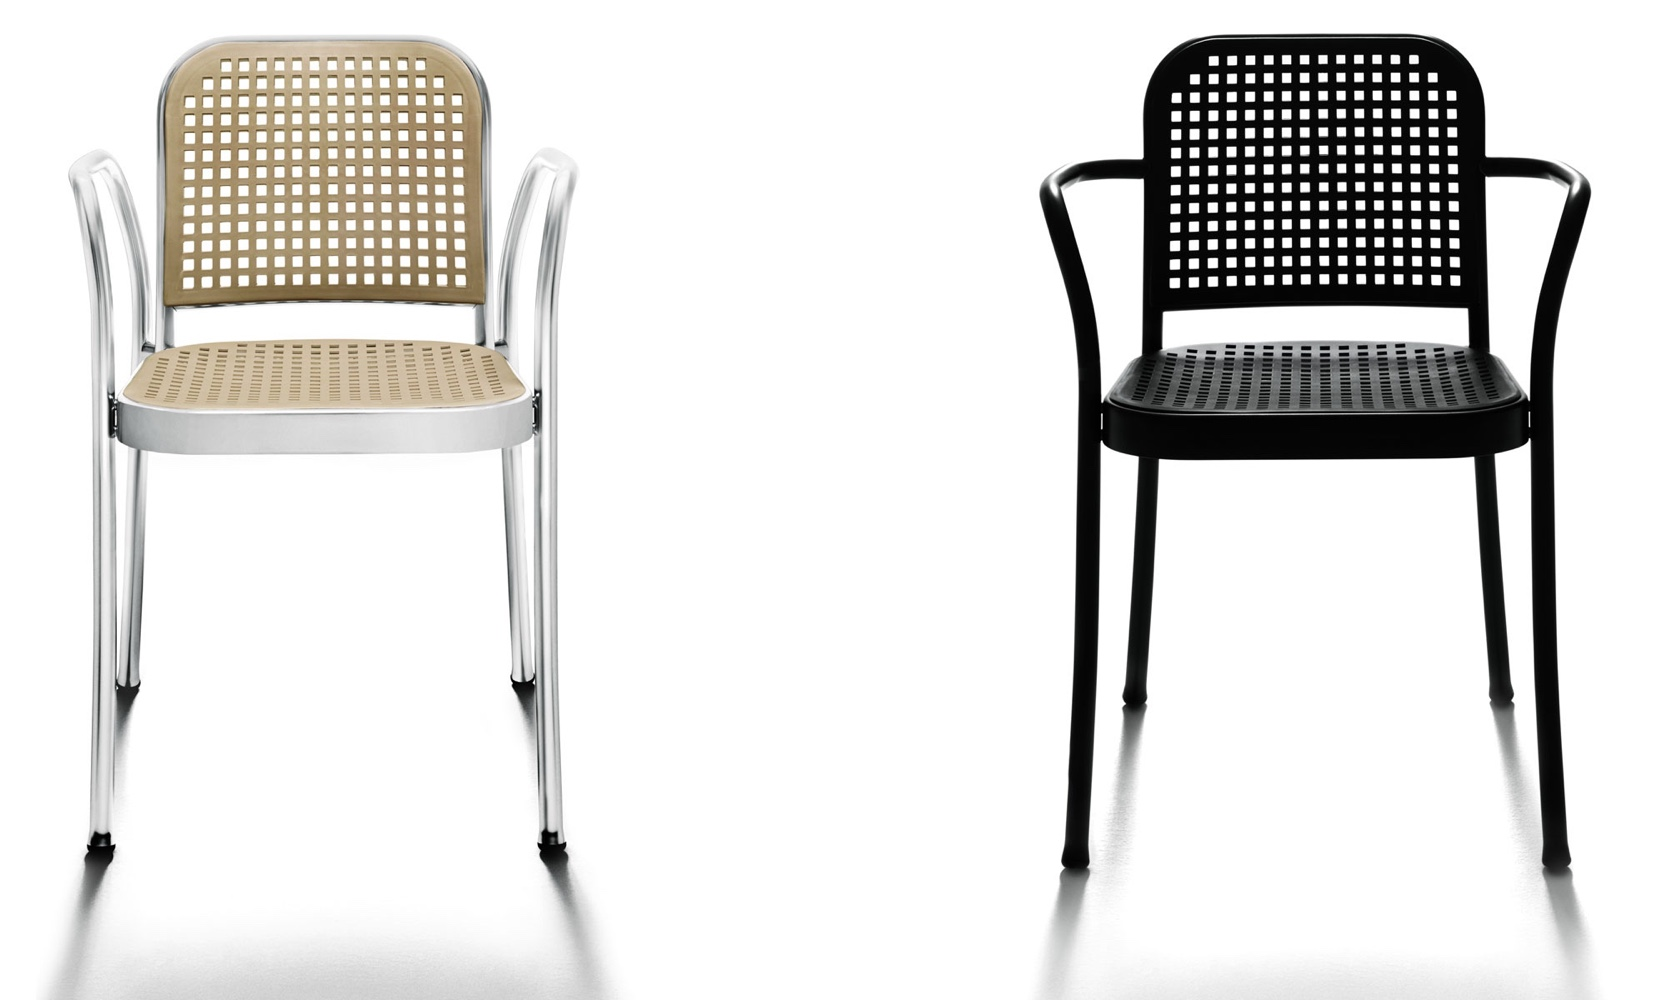 Silver chairs with armrests